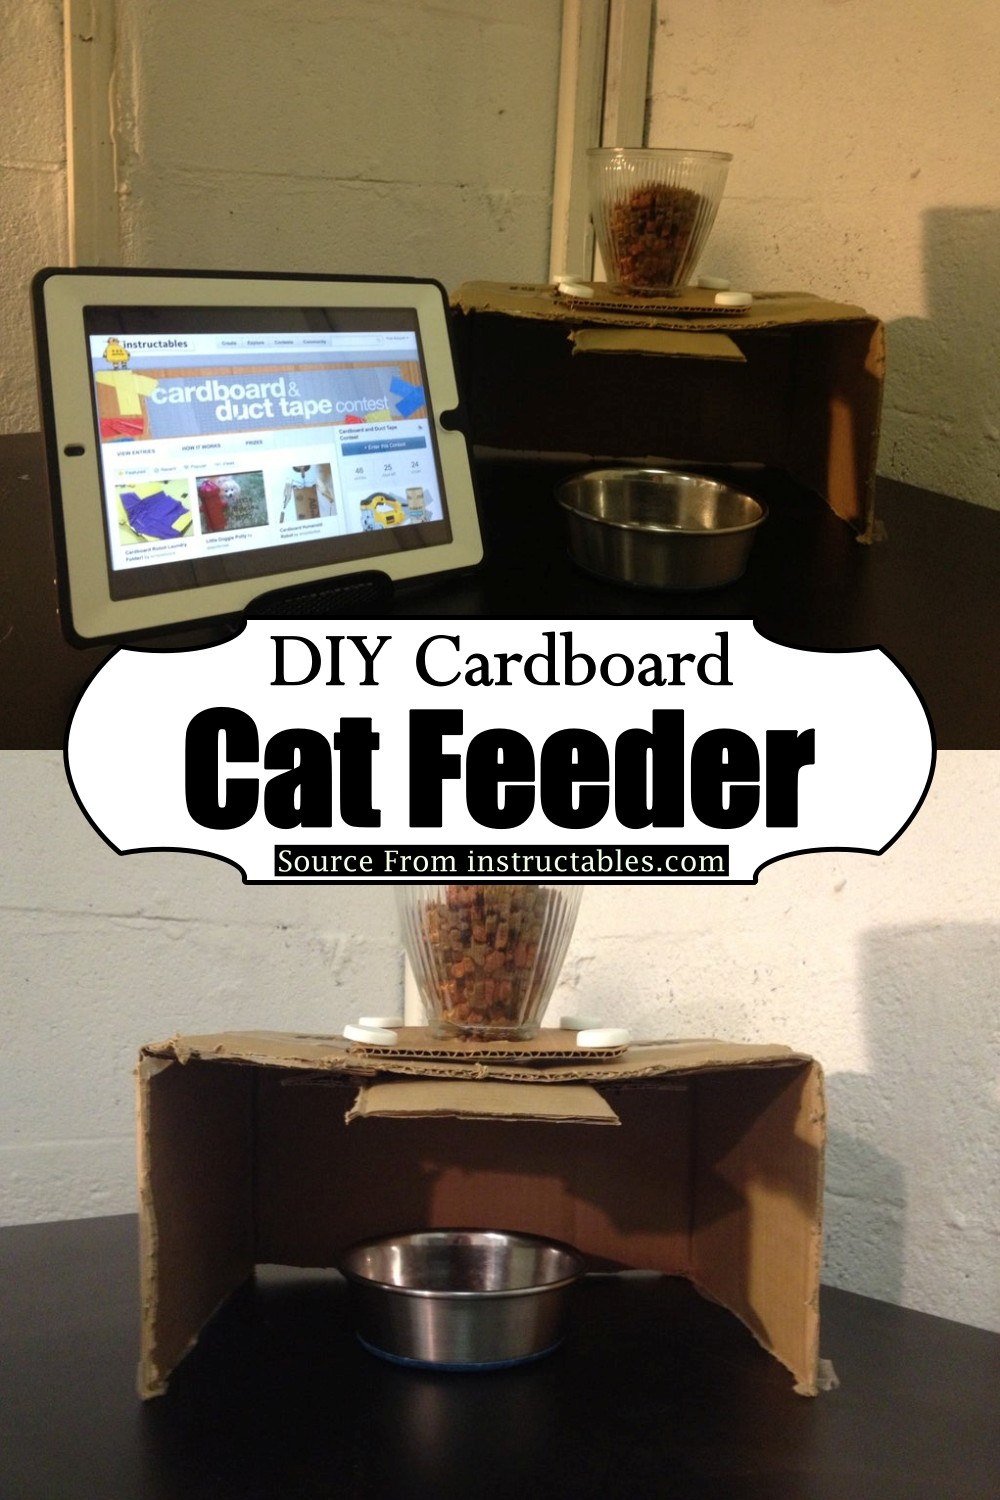 Cardboard Feeder for your pet